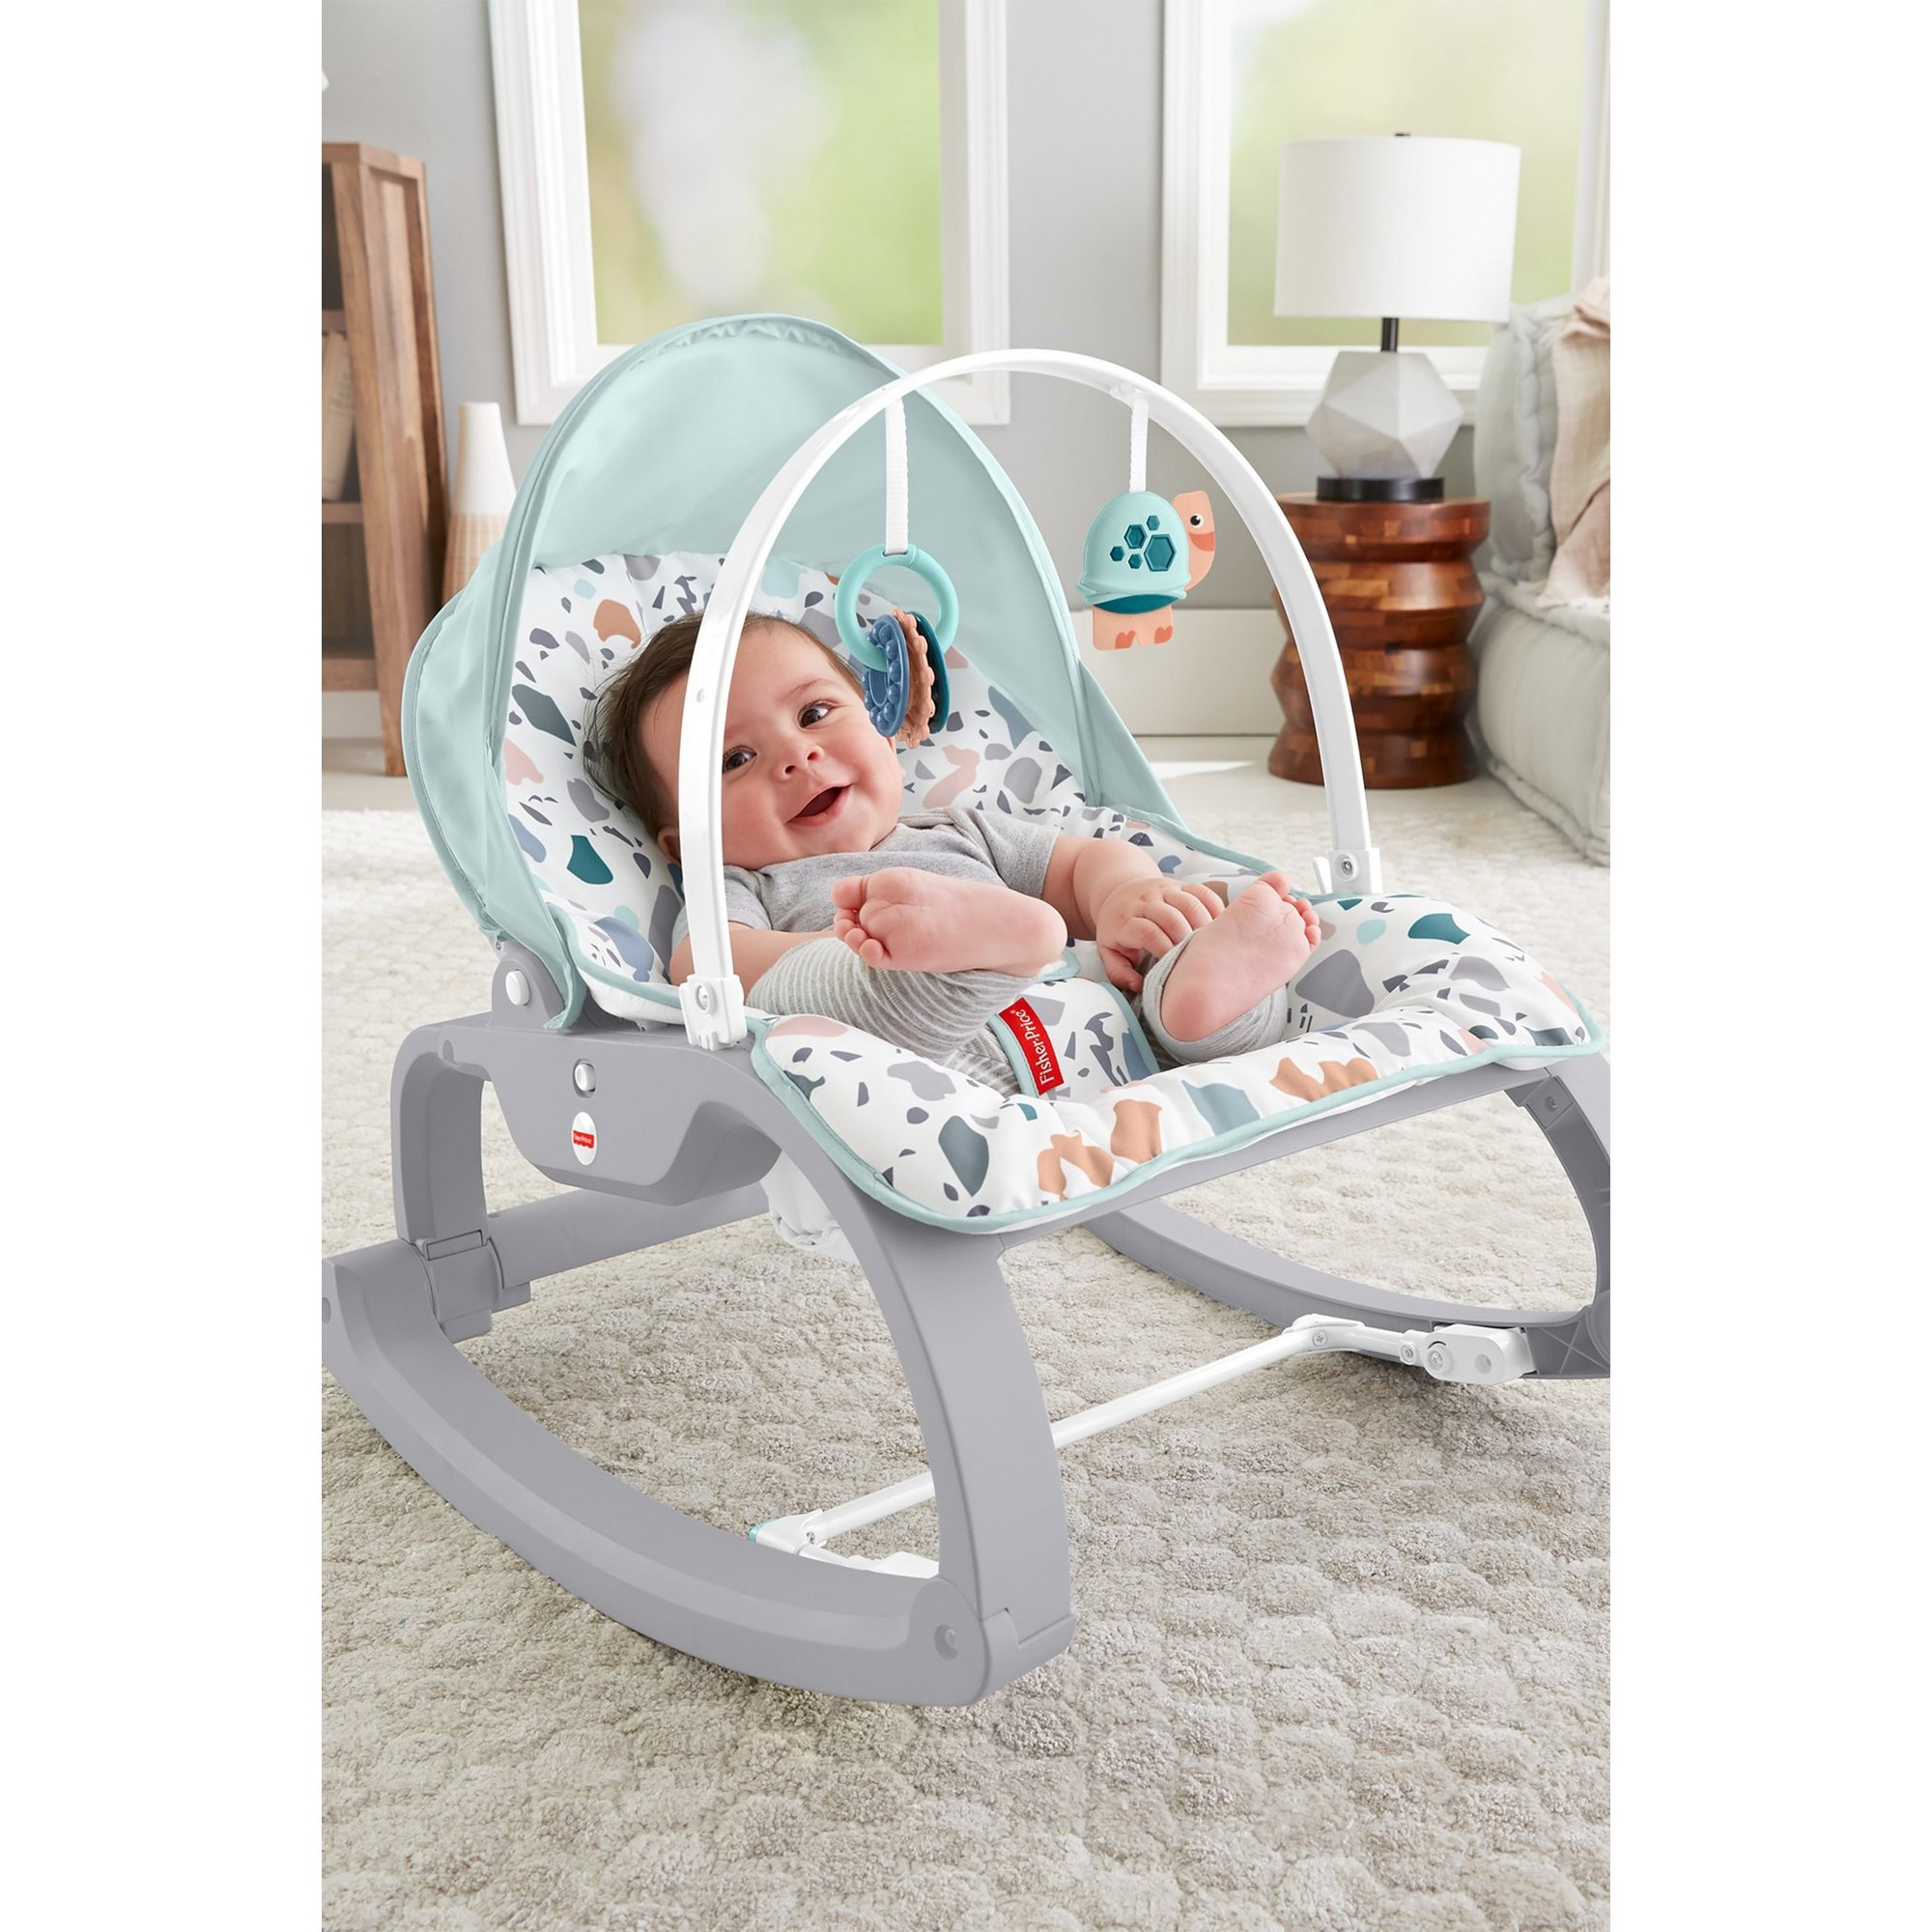 Image of Fisher-Price Deluxe Infant to Toddler Rocker